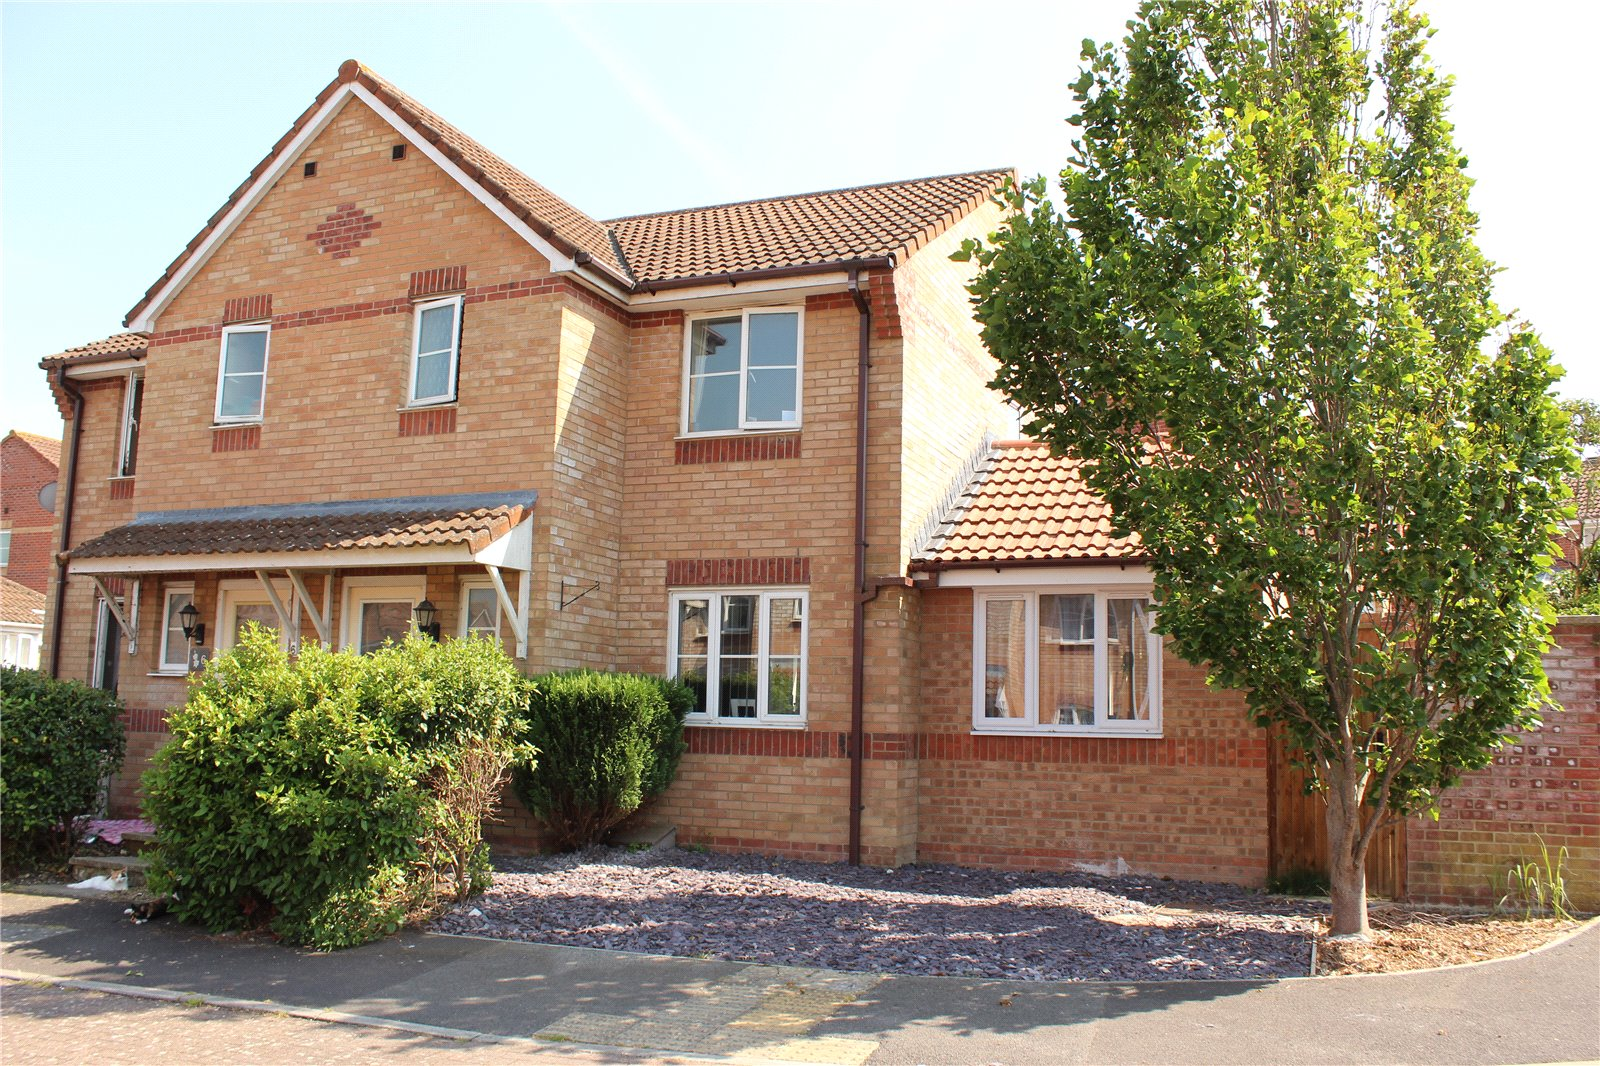 3 Bedrooms Semi Detached House for sale in Horton Way Woolavington Nr Bridgwater TA7